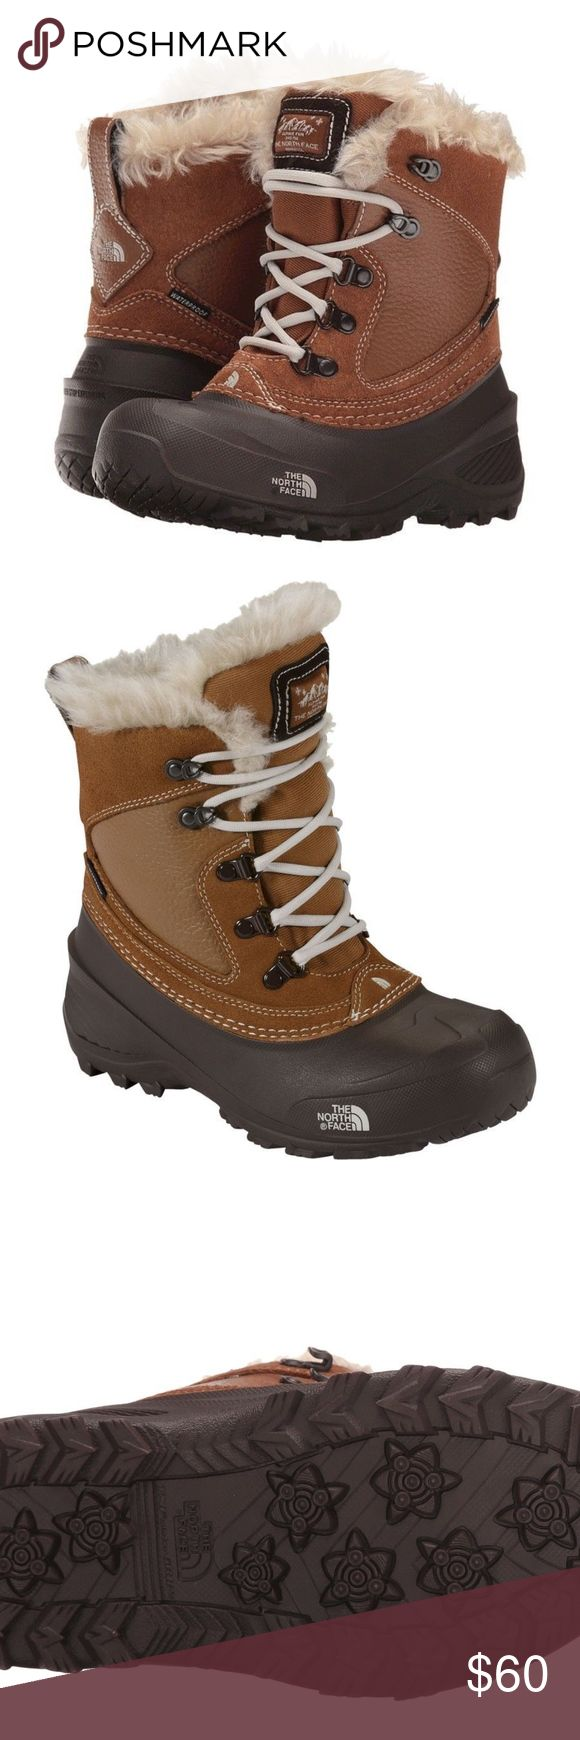 The North Face Youth Shellista Extreme Snow Boot The North Face Youth Shellista Extreme little kid YOUTH US 13 Brown Snow Boot Toasty winter boots for snowy climates and cold weather little kid size 13 (4-7 years) uk 12/EU 31 200g Heatseeker insulation traps fiery warmth Faux fur lining envelopes her feet in cozy comfort Waterproof leather upper repels deep snow and slush Winter Grip rubber sole for traction on snow and ice The North Face Shoes Rain & Snow Boots